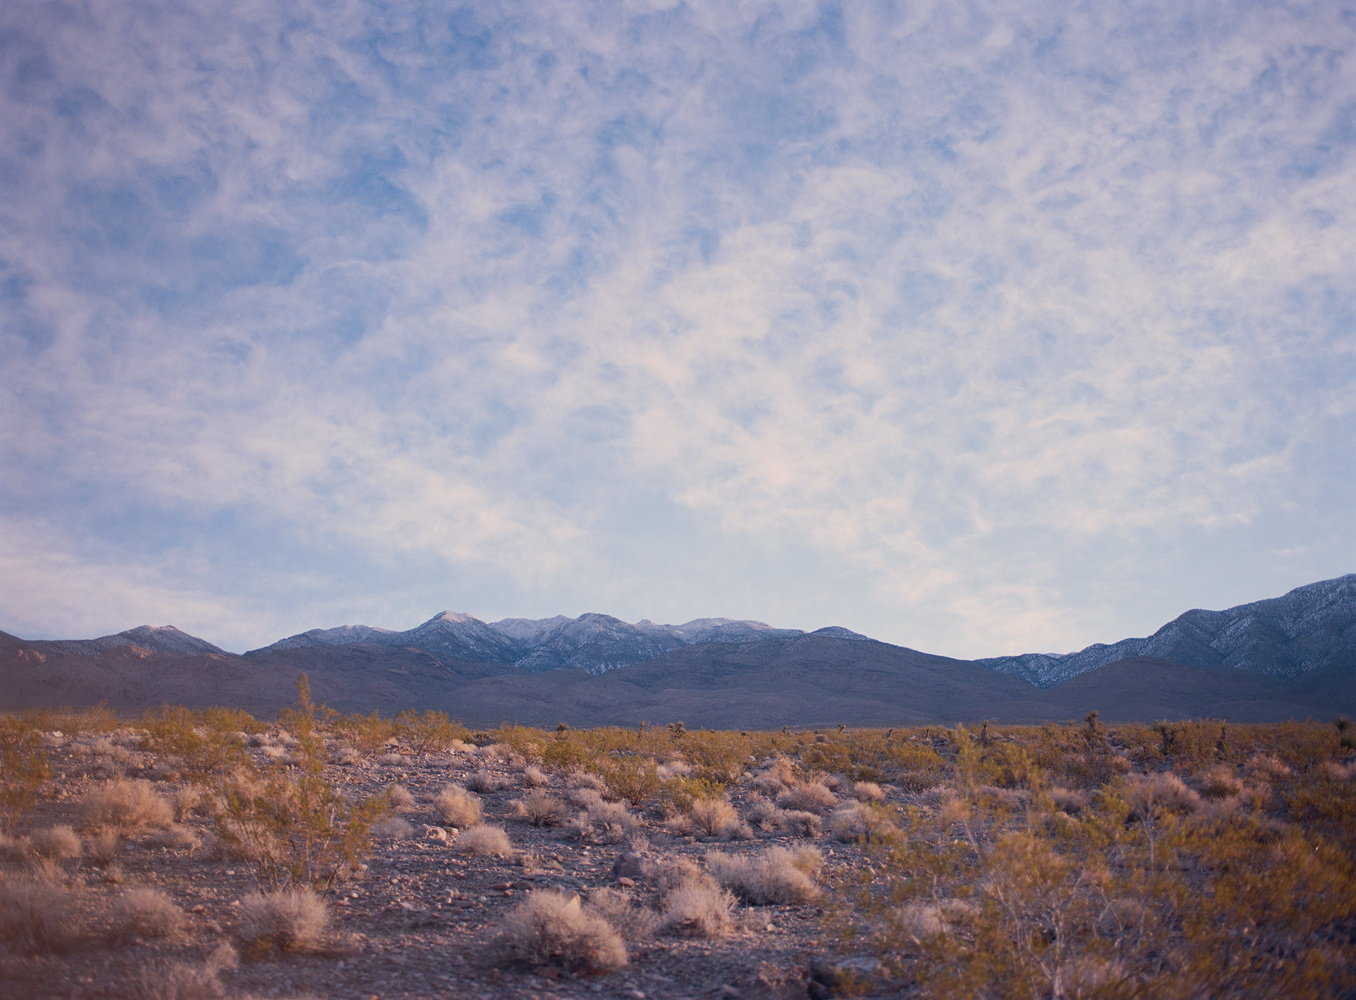 Somewhere in Nevada by Wyatt Ryan